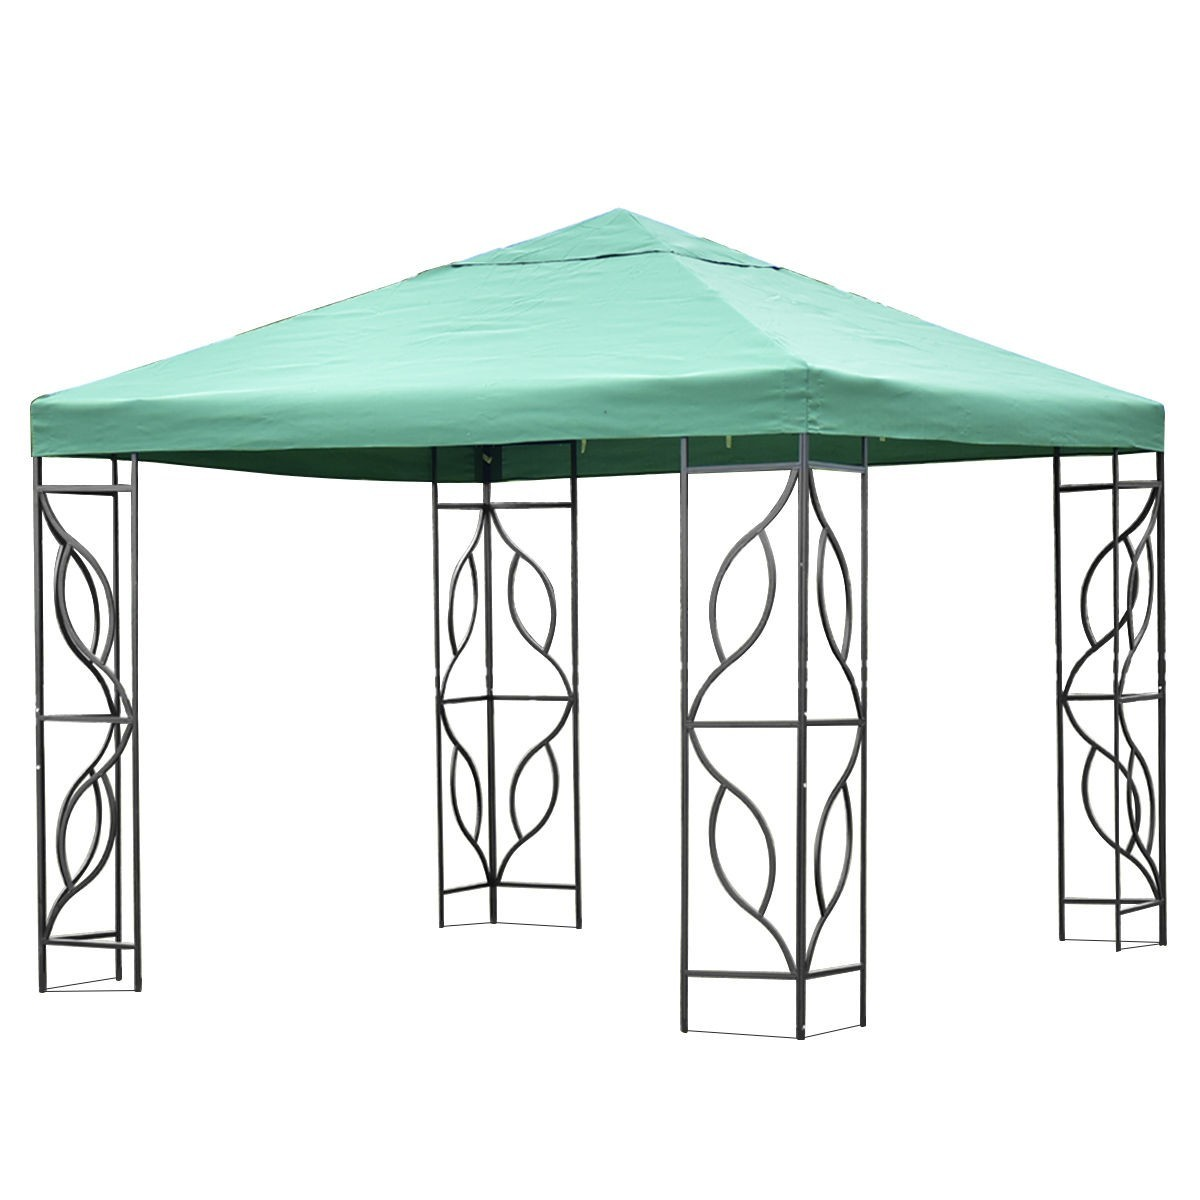 10' x 10' Shelter Patio Wedding Party Canopy by